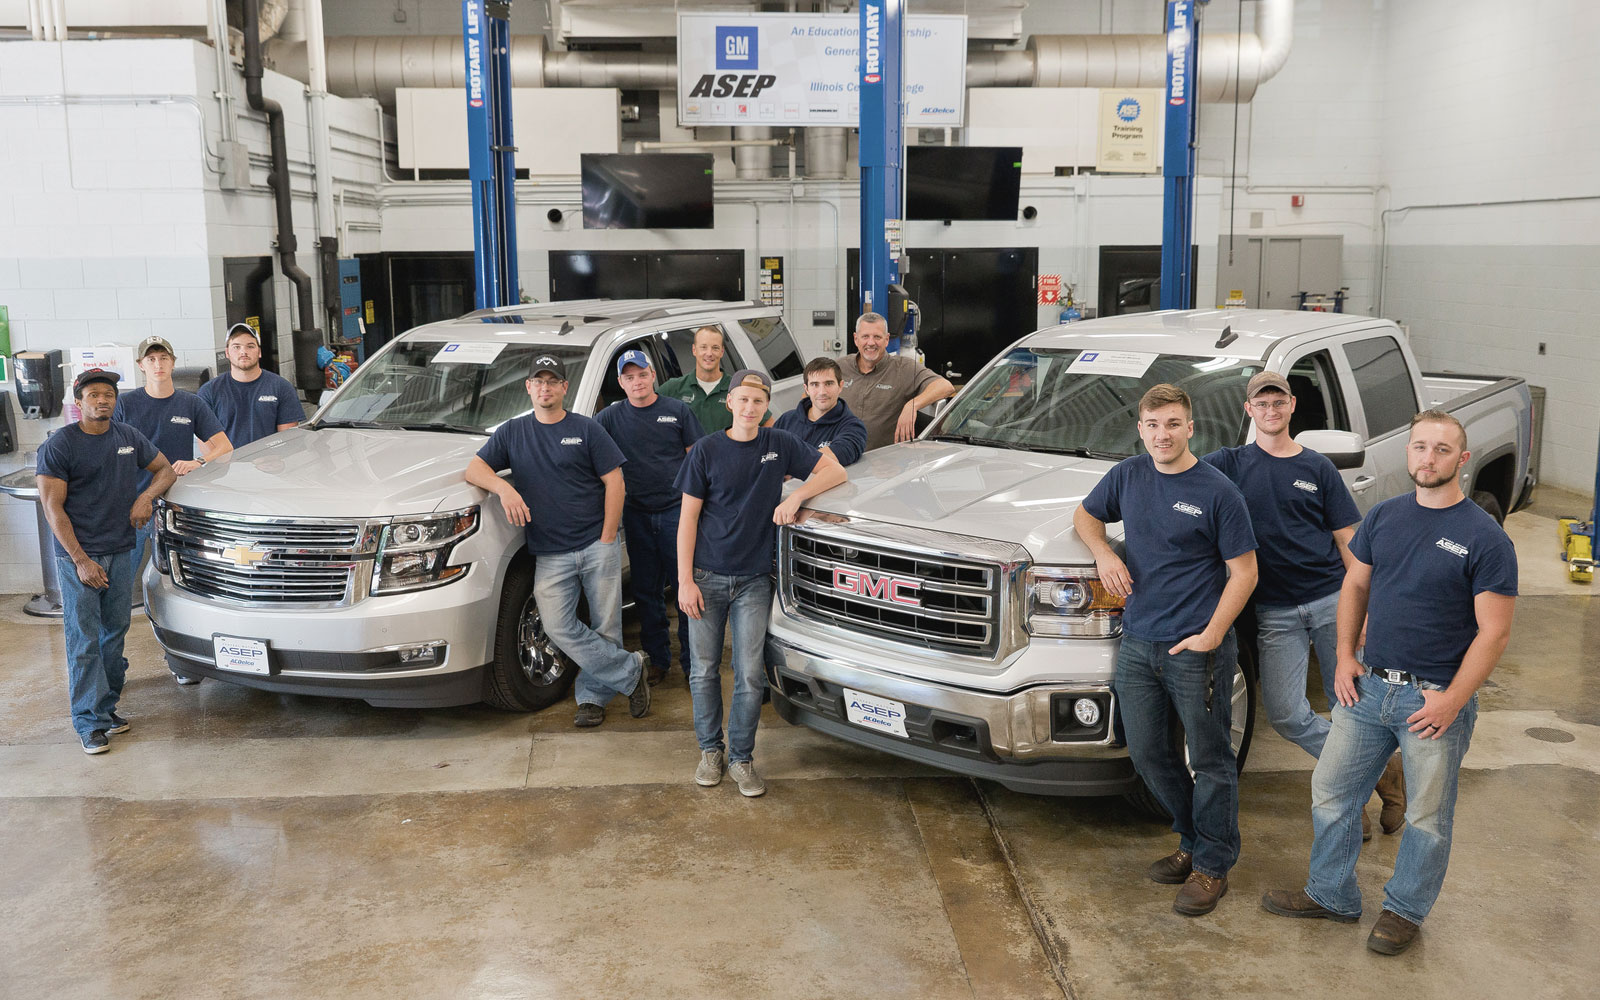 gm motors internship General motors company, headquartered in detroit, employs 209,000 people in every major region of the world the internship assignments are at gmio & gm china.